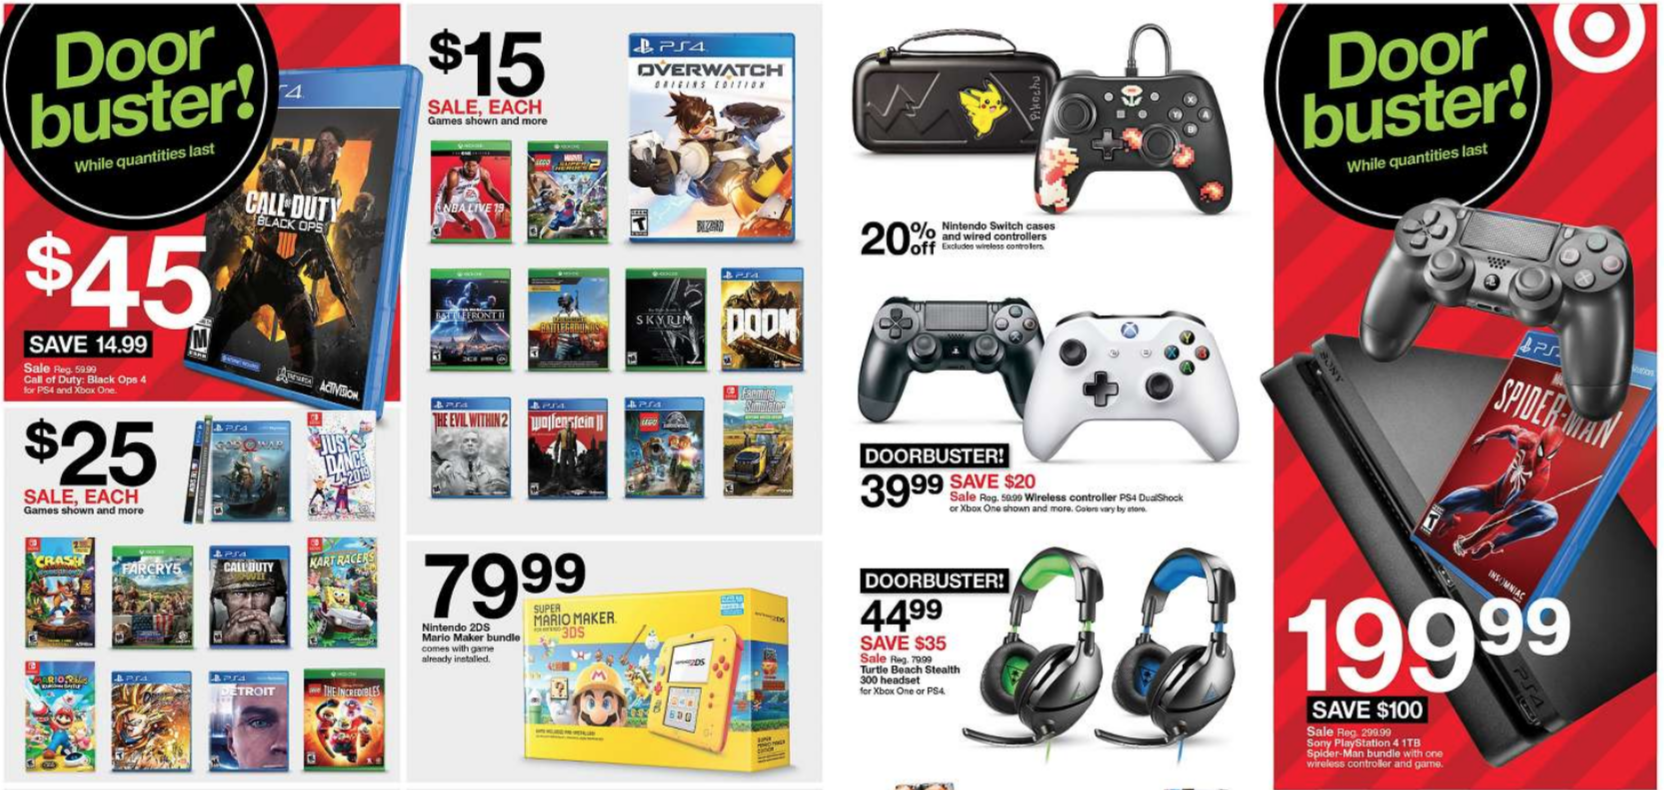 Target's Black Friday Deals Revealed, Features Spider-Man